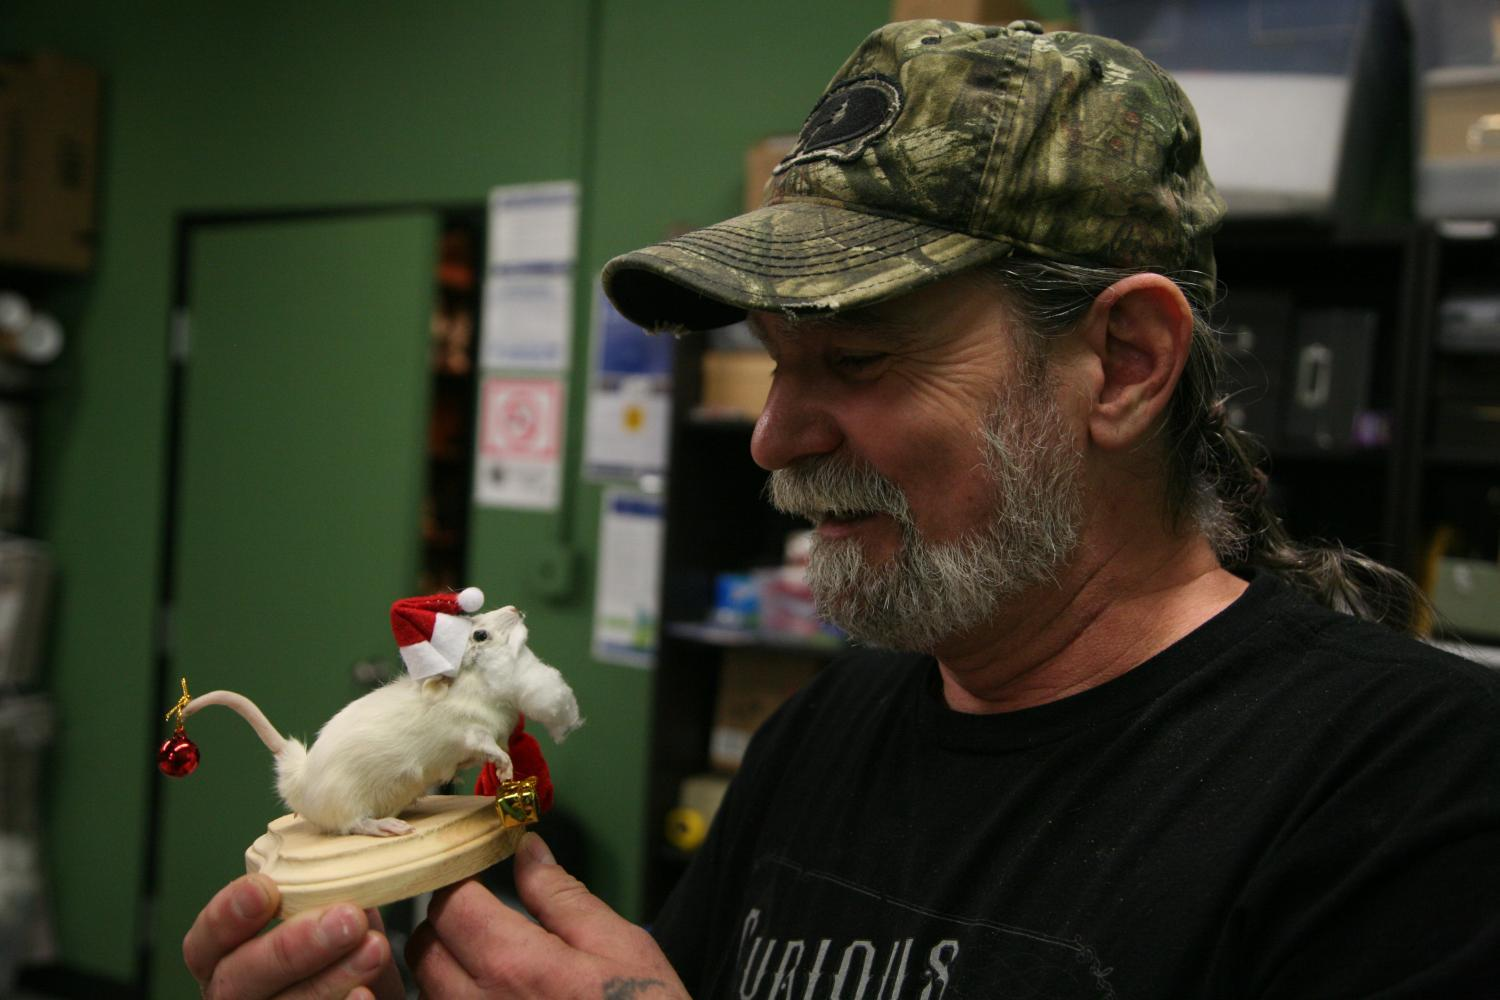 teacher doug james holds a taxidermied rat dressed like santa